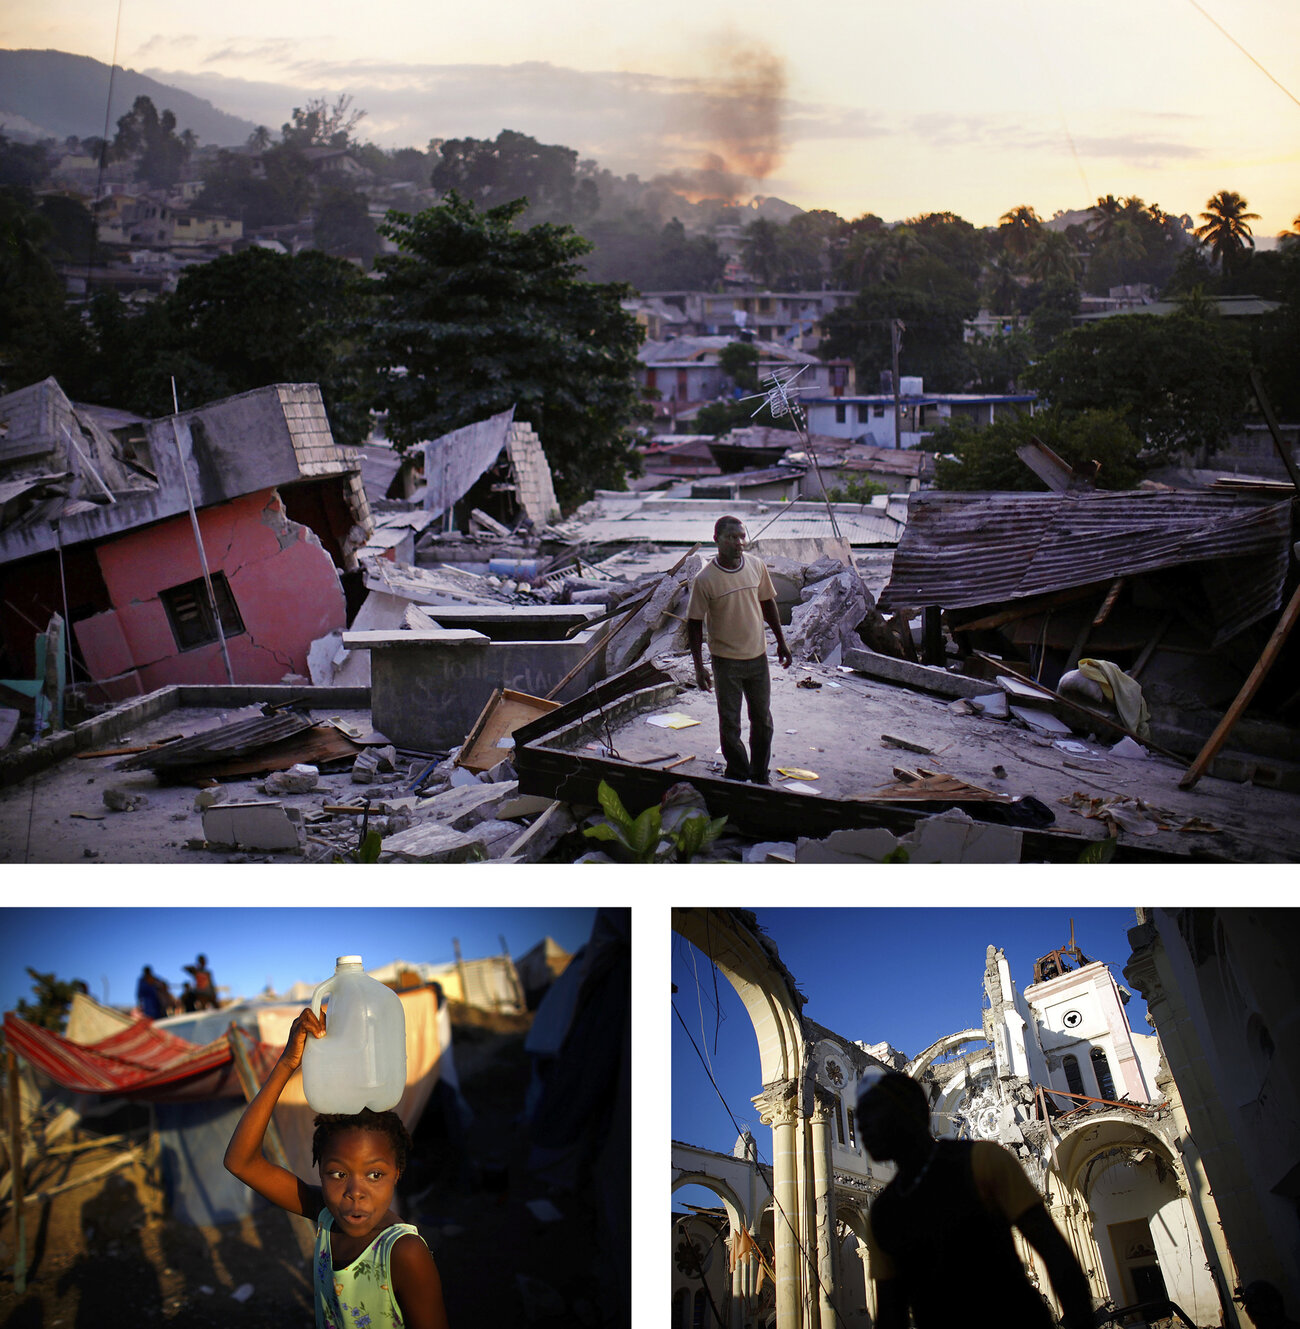 Haiti, just days after a 7.0 magnitude earthquake destroyed much of the country on Jan. 12, 2010. The disaster uprooted many of its residents and killed more than 200,000 people.